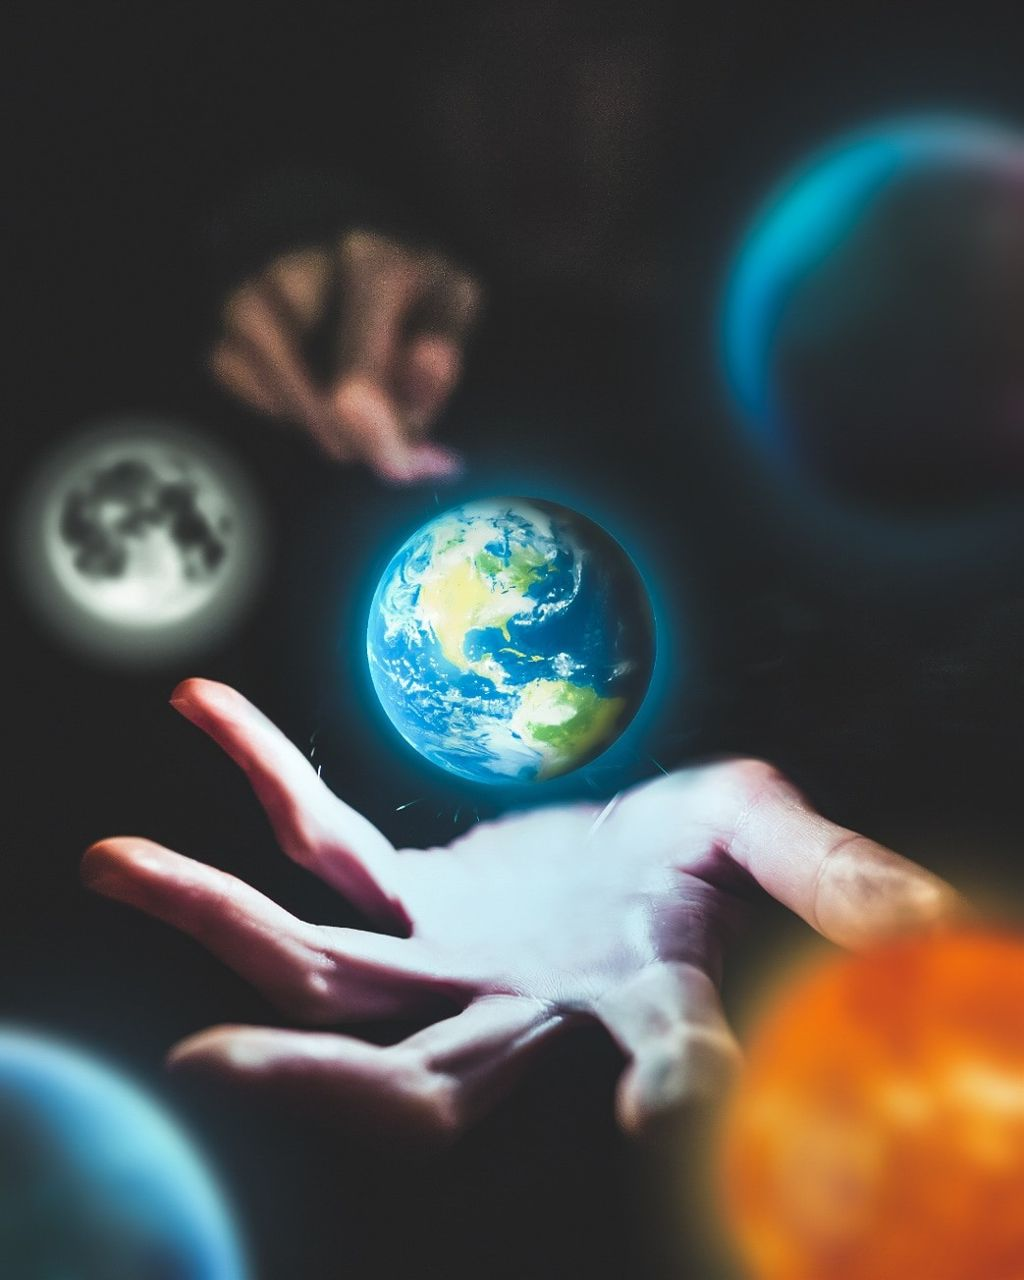 Earth in the hand 🔥 #visualart  #freetoedit #repost #featureme #featurethis #picsart @picsart